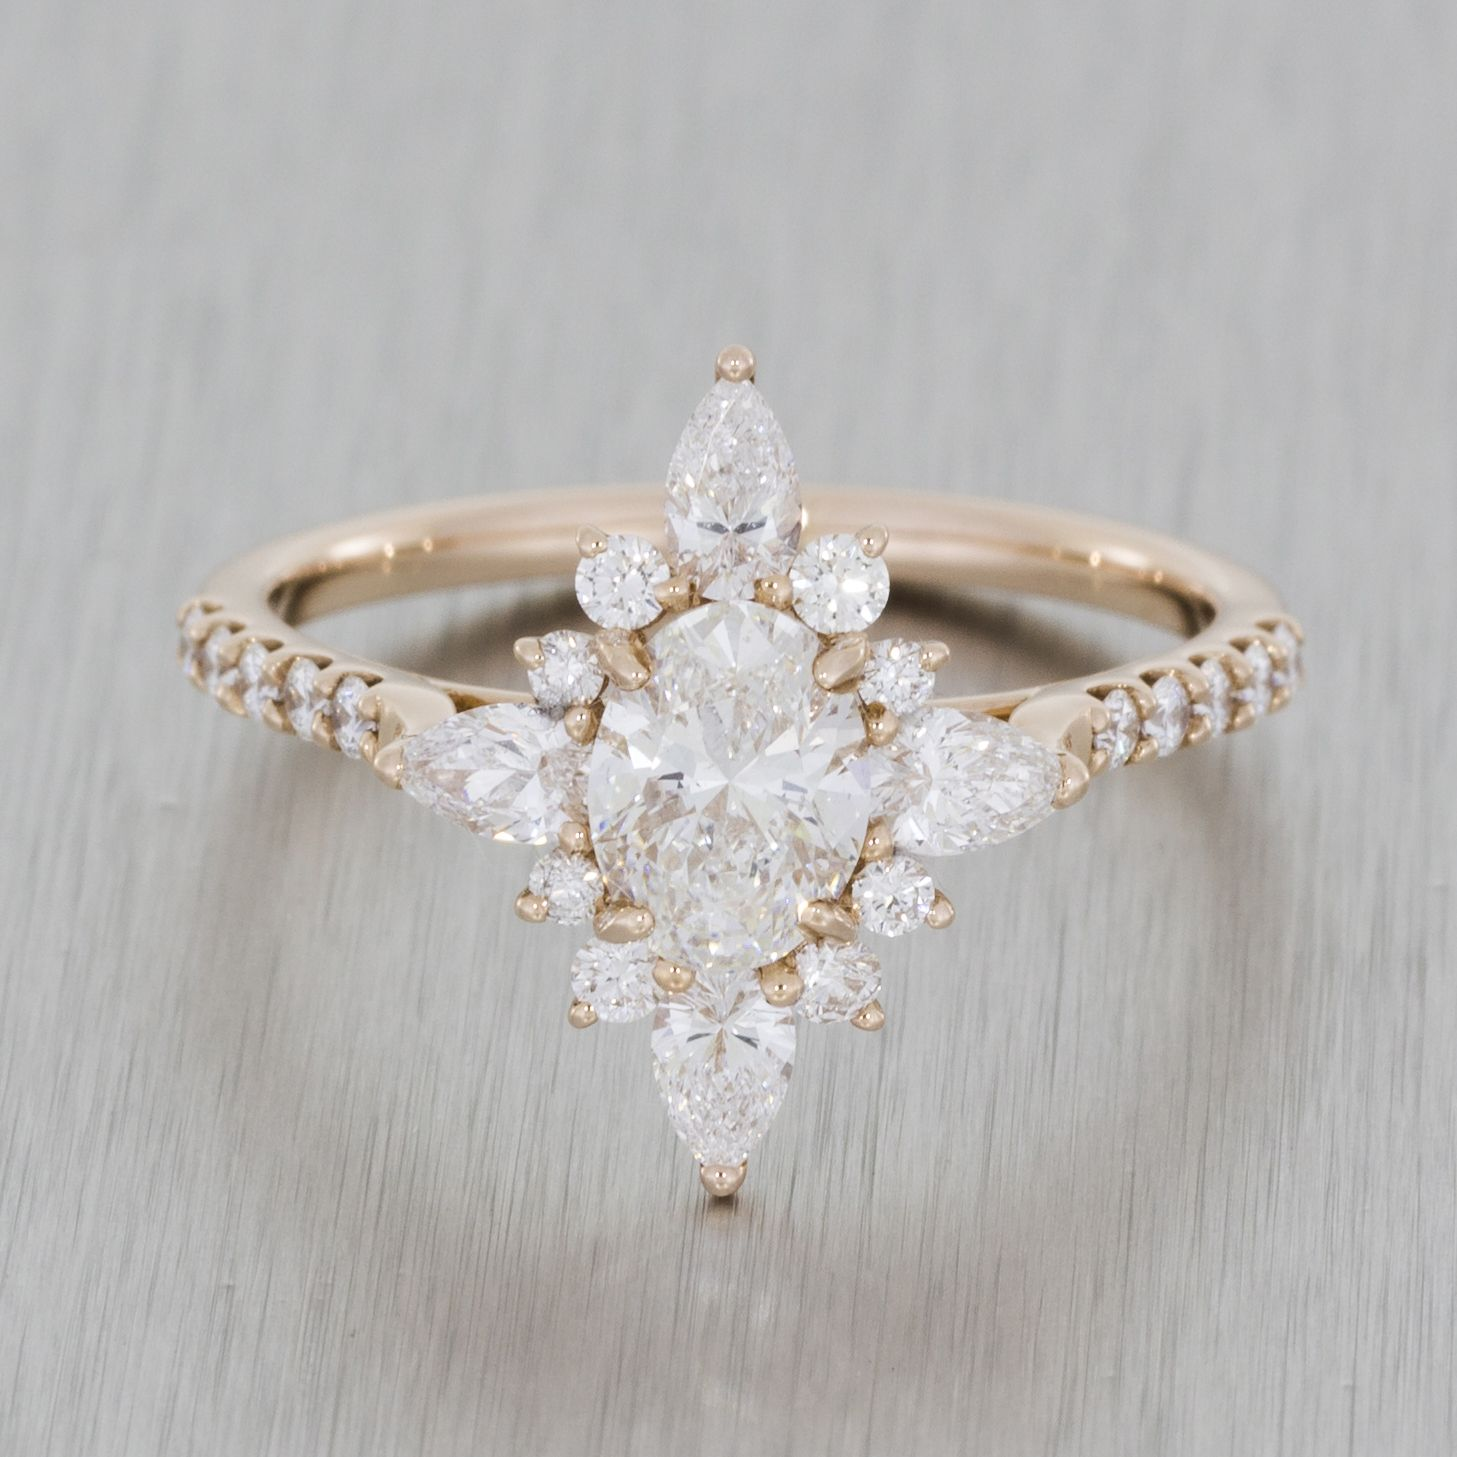 rose gold vintage ballerina engagement ring. marquise oval diamond